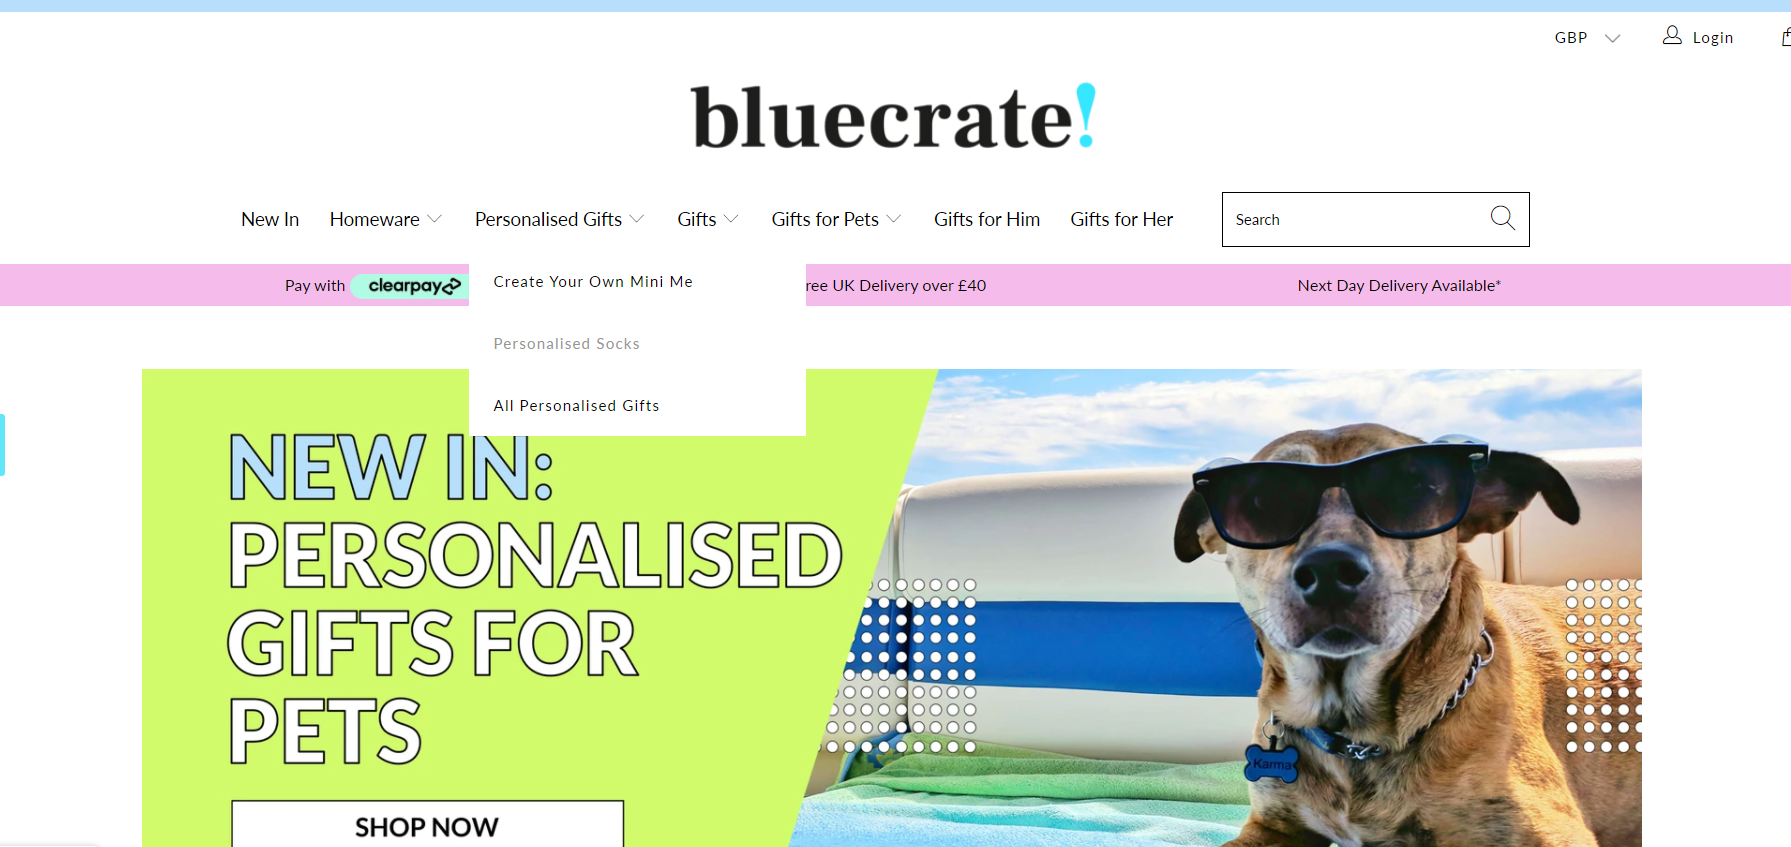 shopify dropshipping store examples - bluecrate